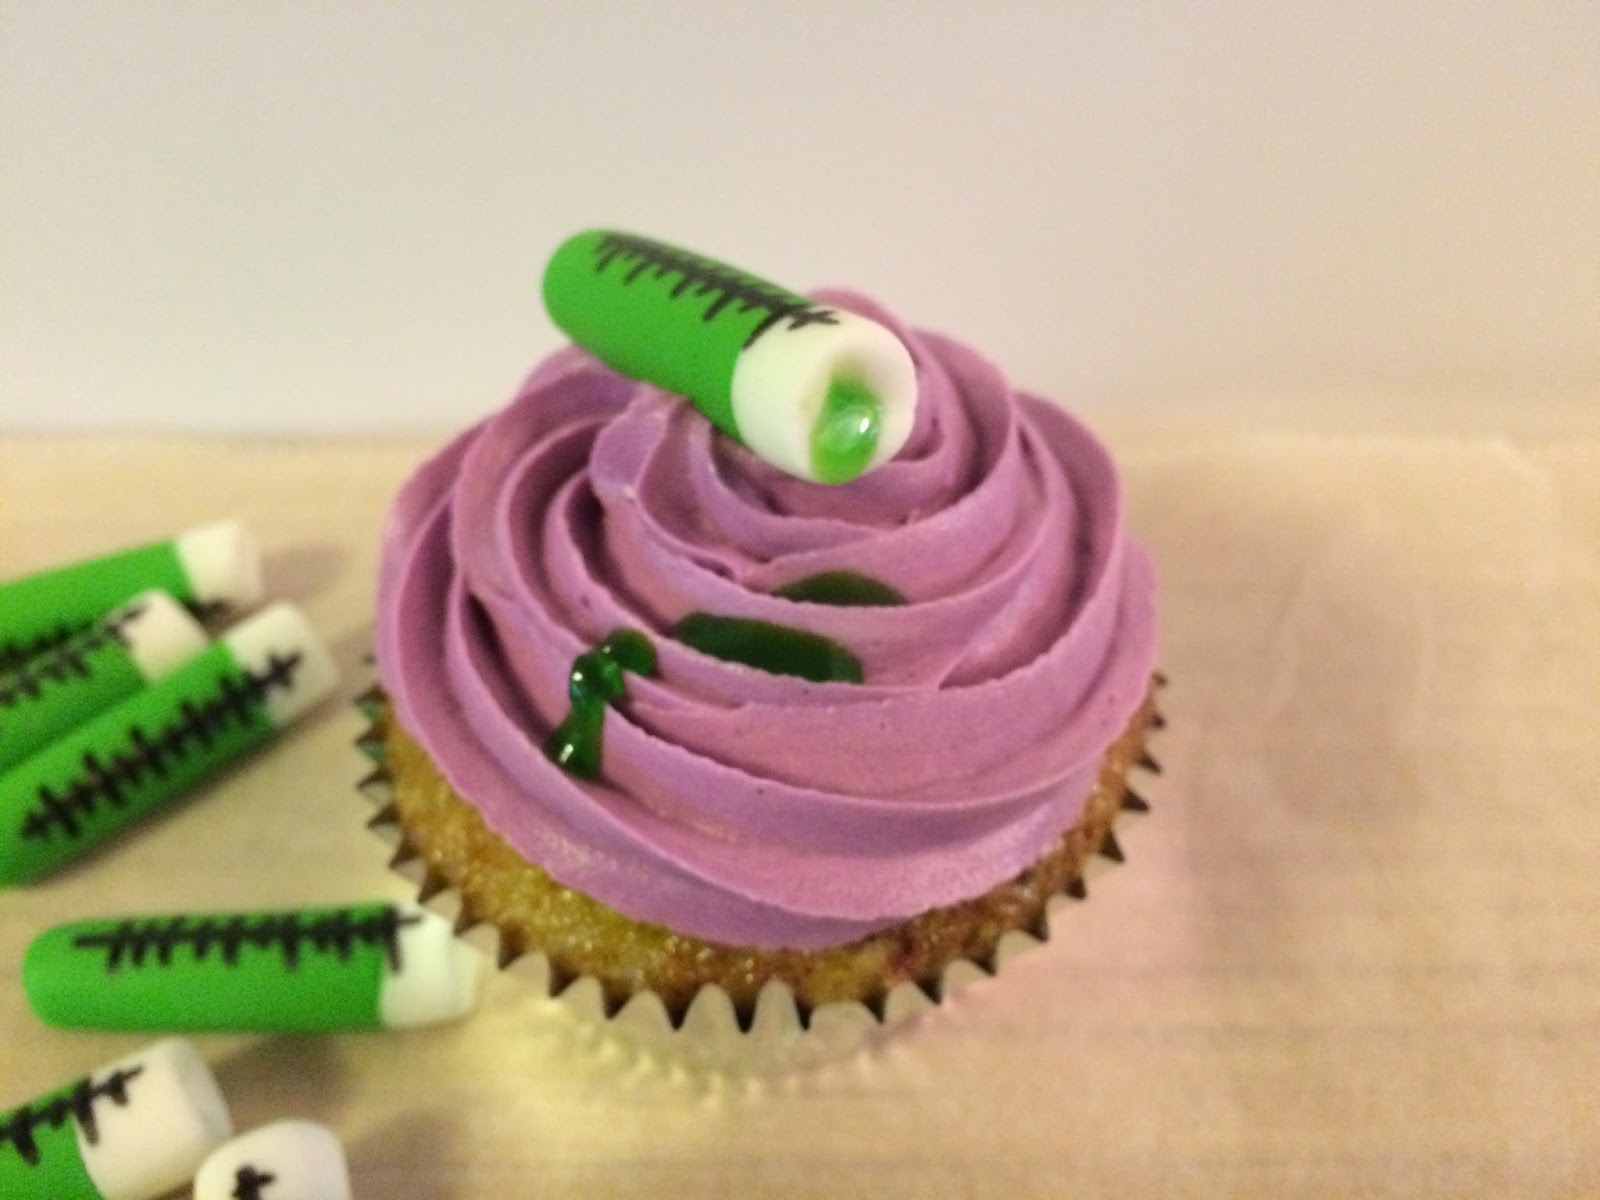 Science themed cupcakes crissas cake corner beakers test tubes the periodic table and albert einstein come to mind the cupcakes are vanilla cupcakes with a tye dye effect using electric purple gamestrikefo Choice Image